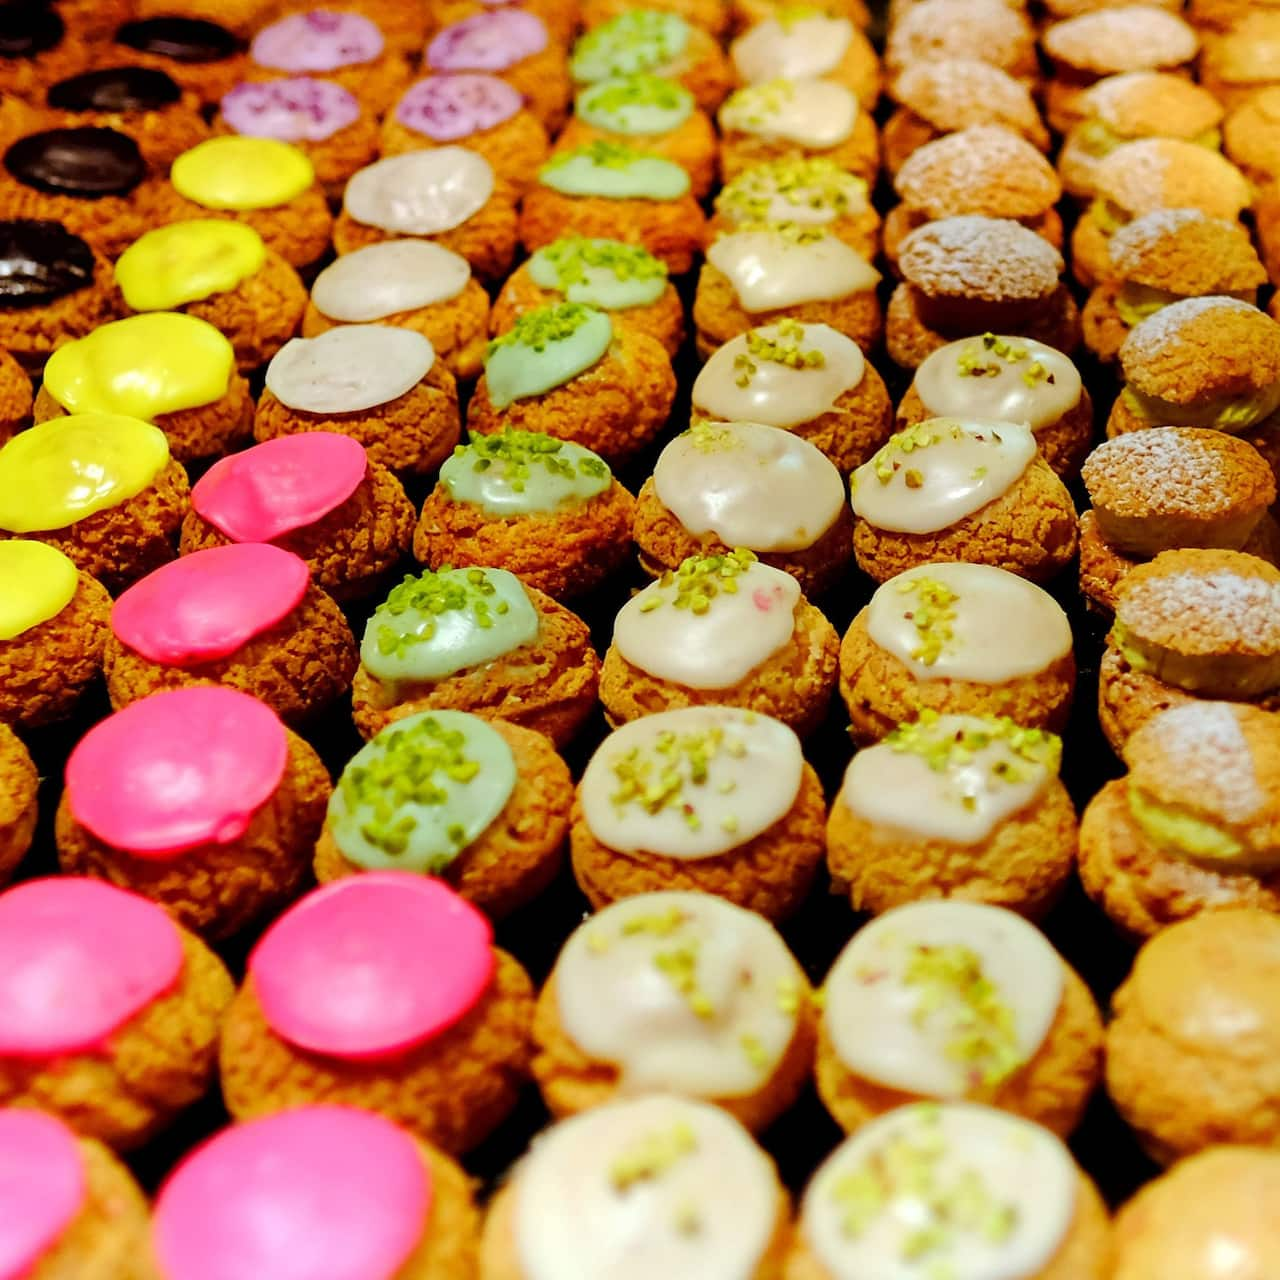 A large selection of eclairs, the popular French treat